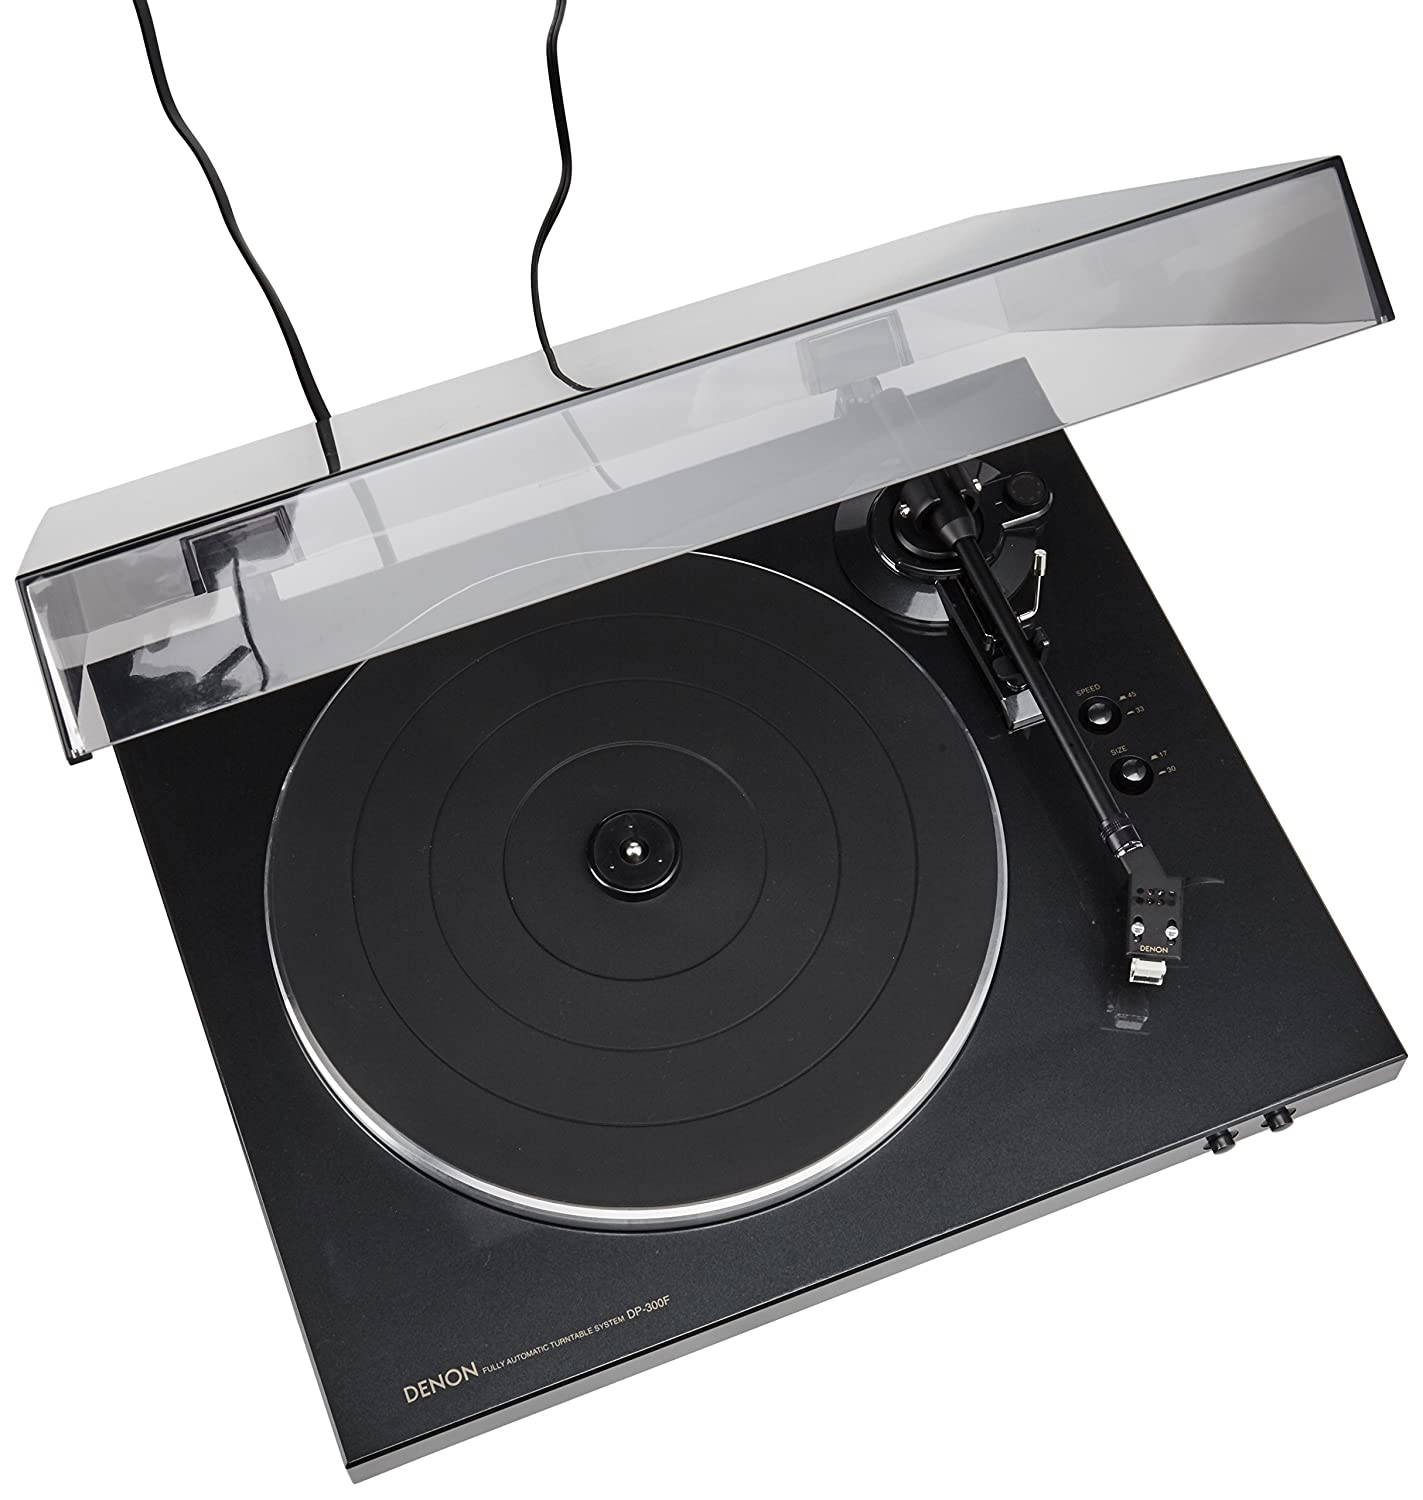 Denon Fully Automatic Turntable Black Friday deal 2019